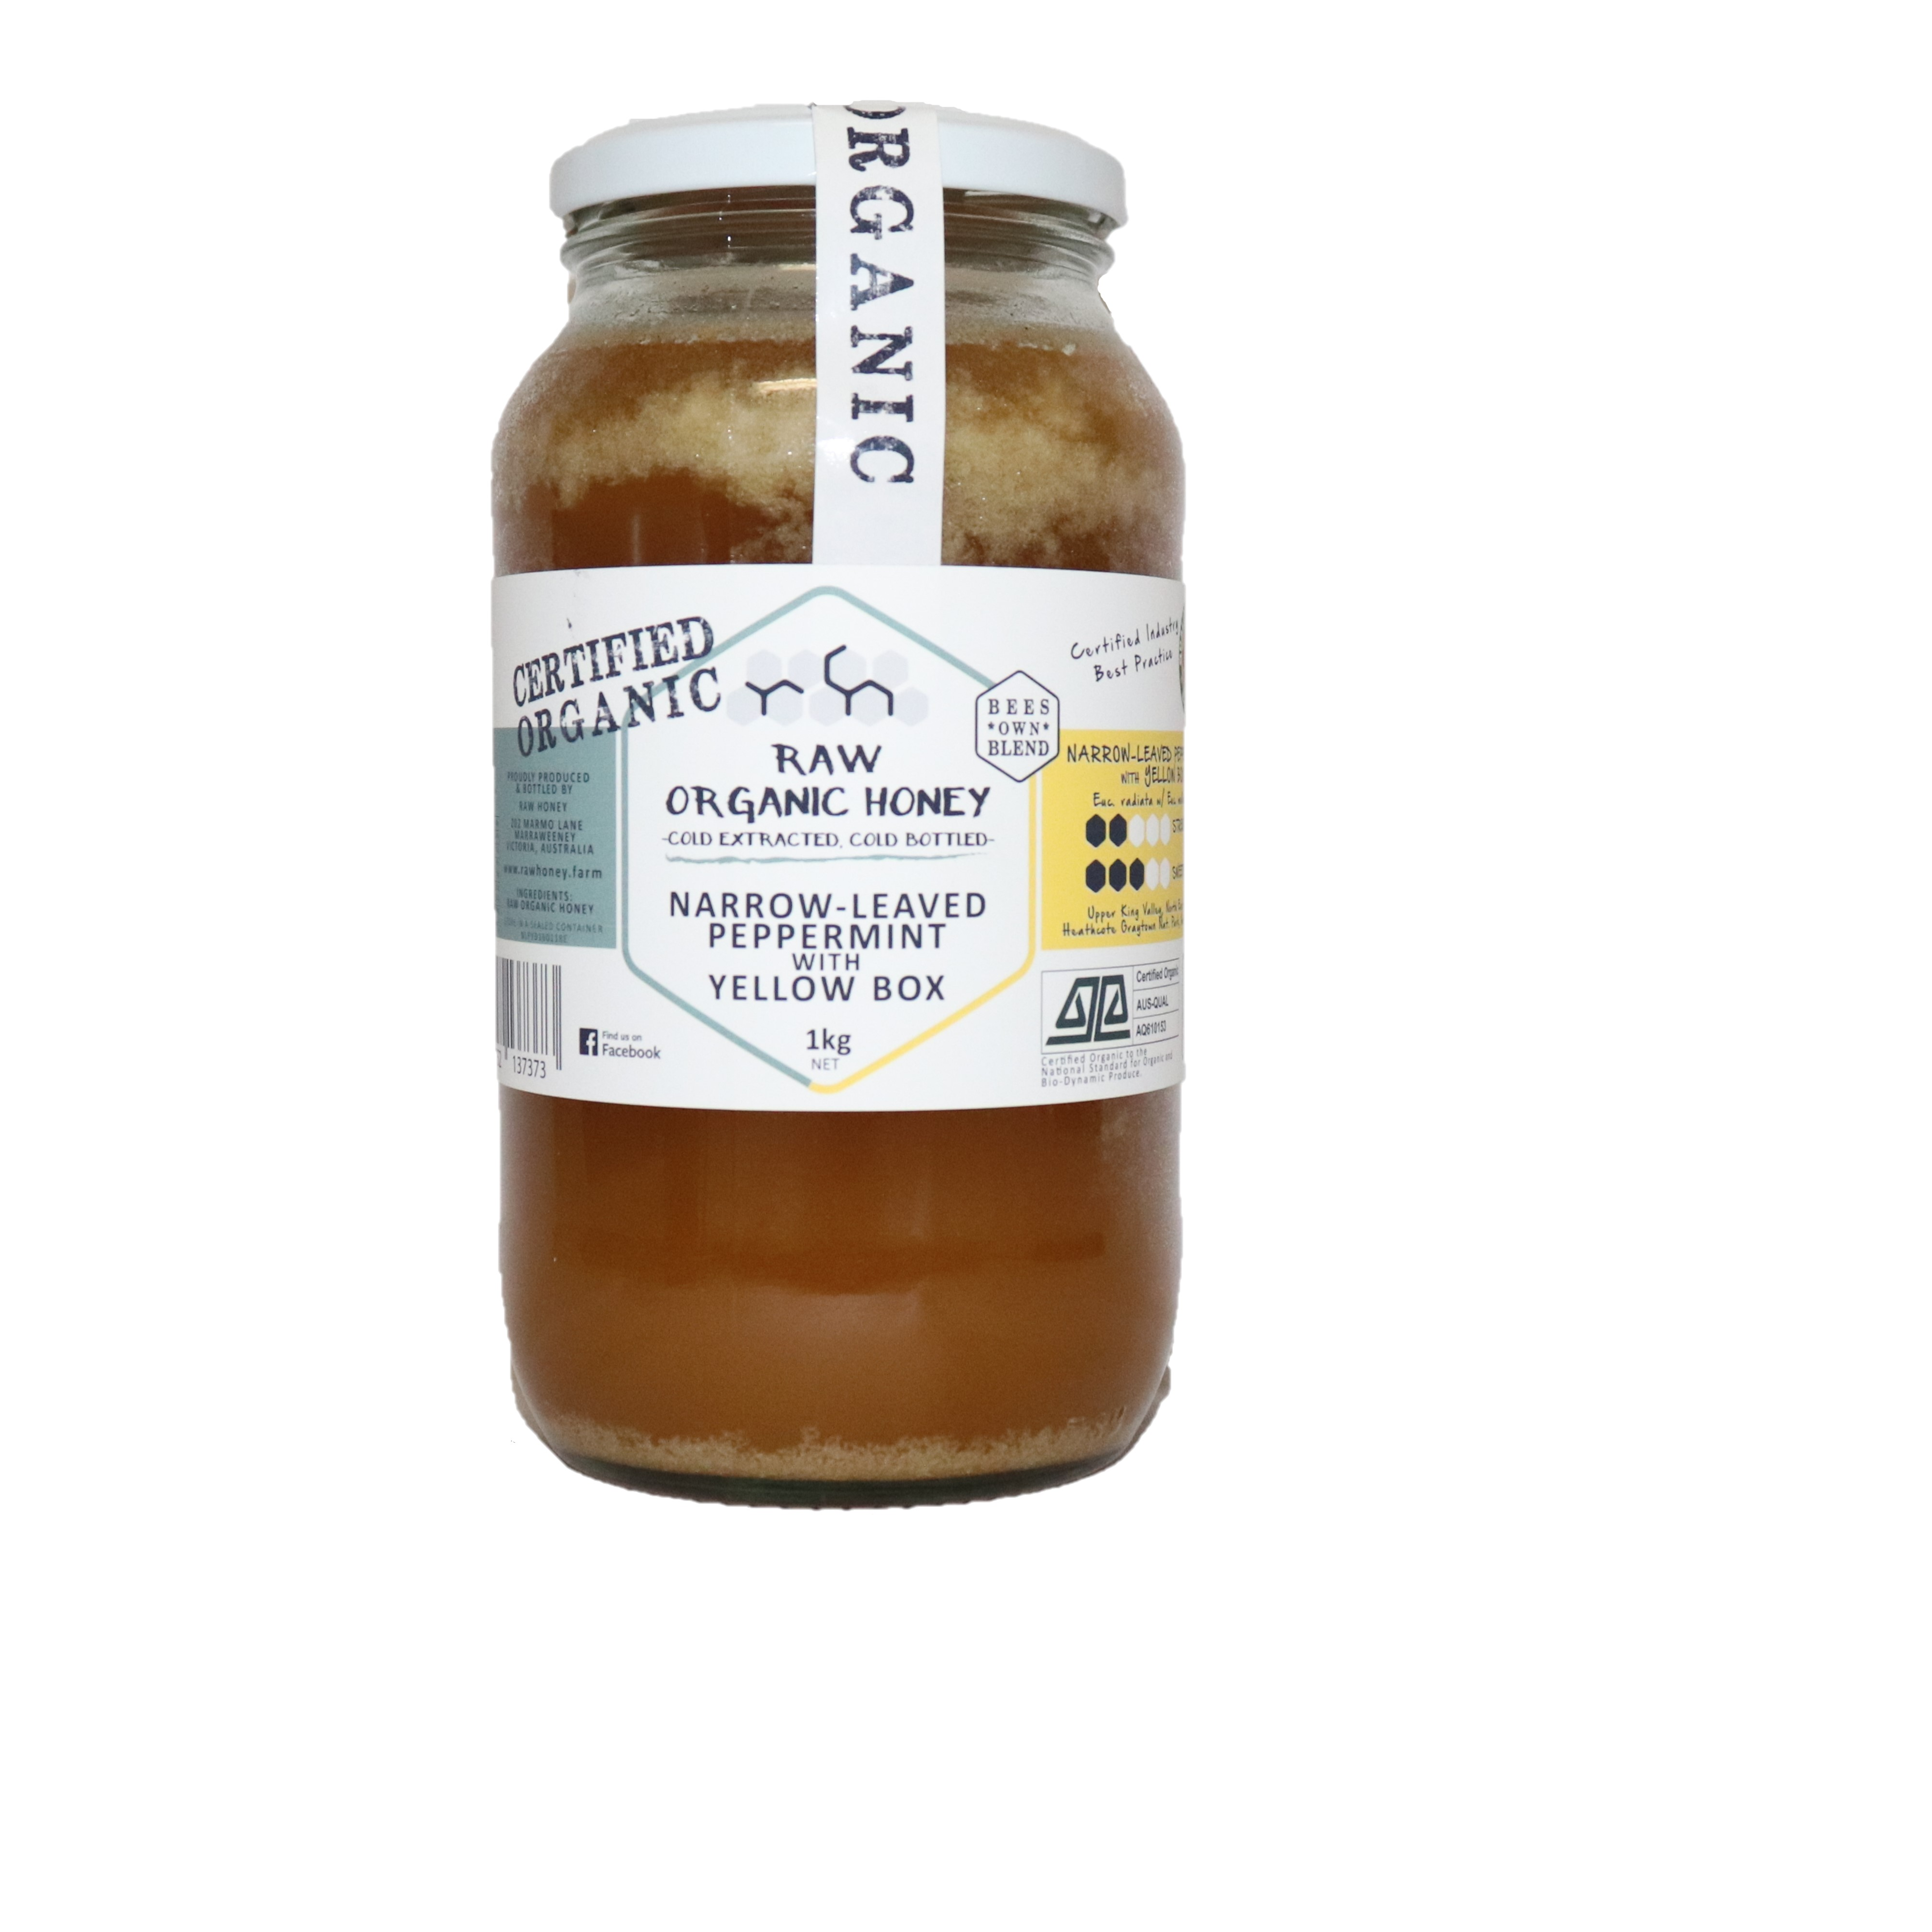 Raw Honey – Narrow-Leaved Peppermint with Yellow Box 1kg